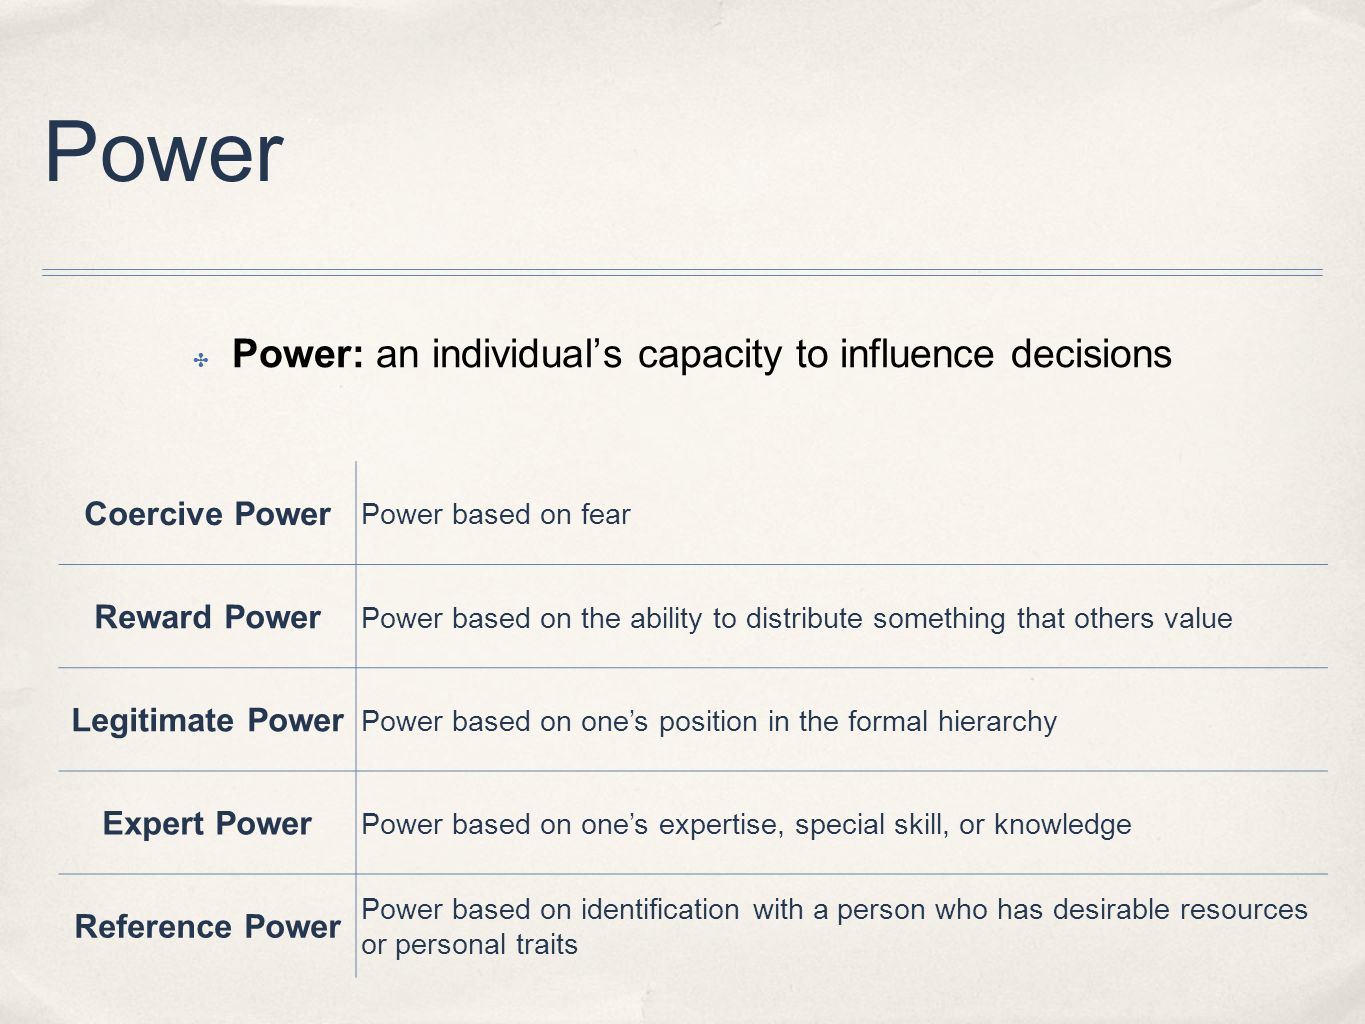 Power: an individual's capacity to influence decisions